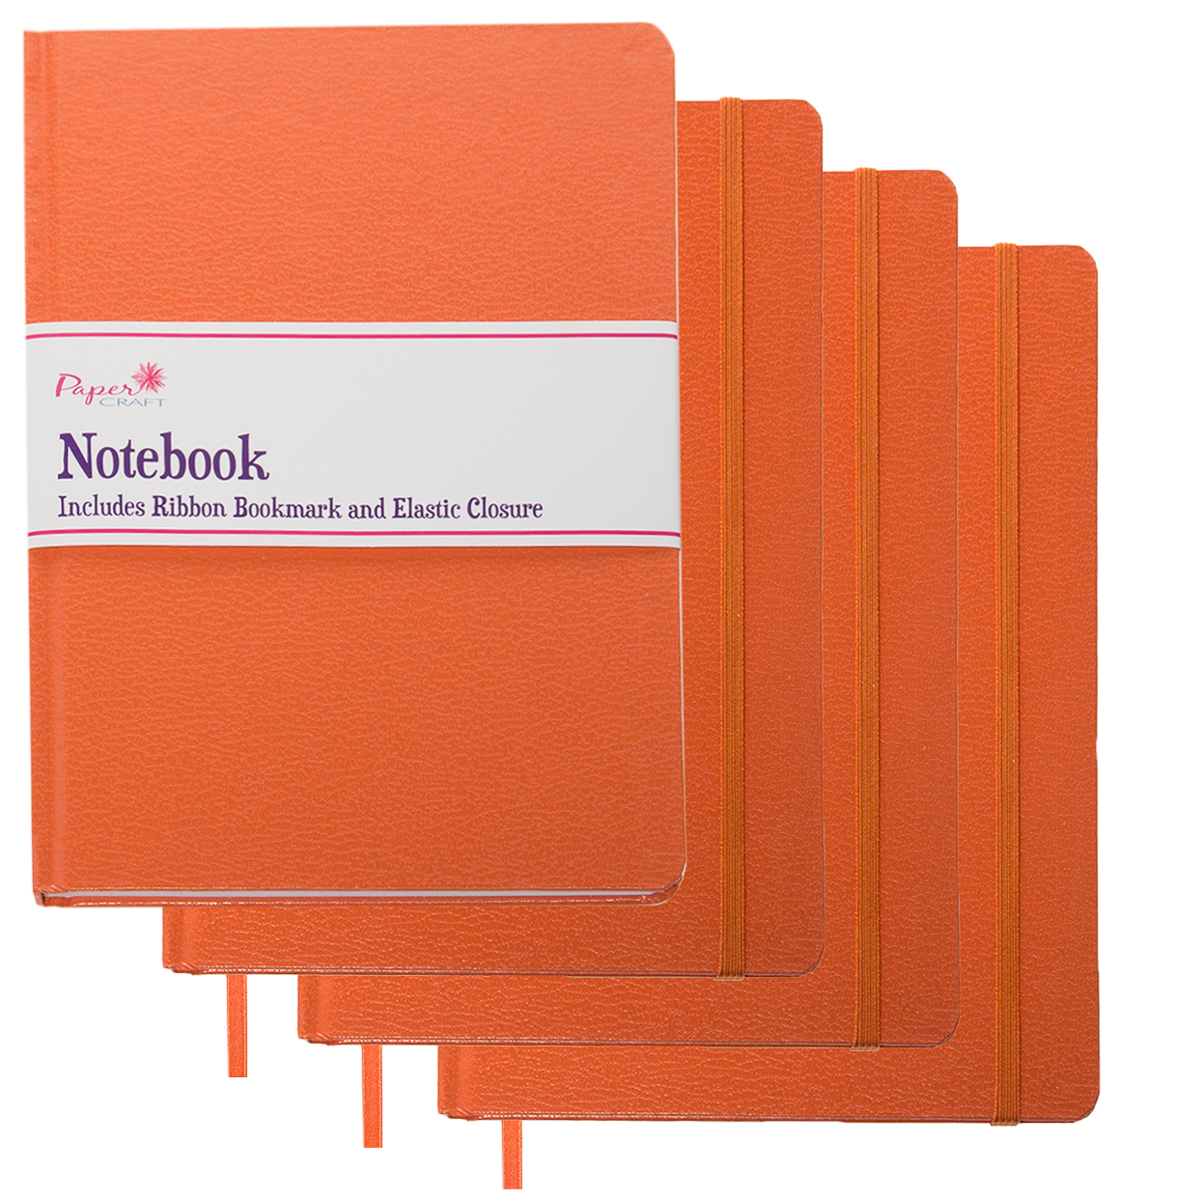 Paper Craft (4 Pack) Journals To Write In Wide Ruled Banded 8.5 x 5.5 Notebook With Ribbon Bookmark